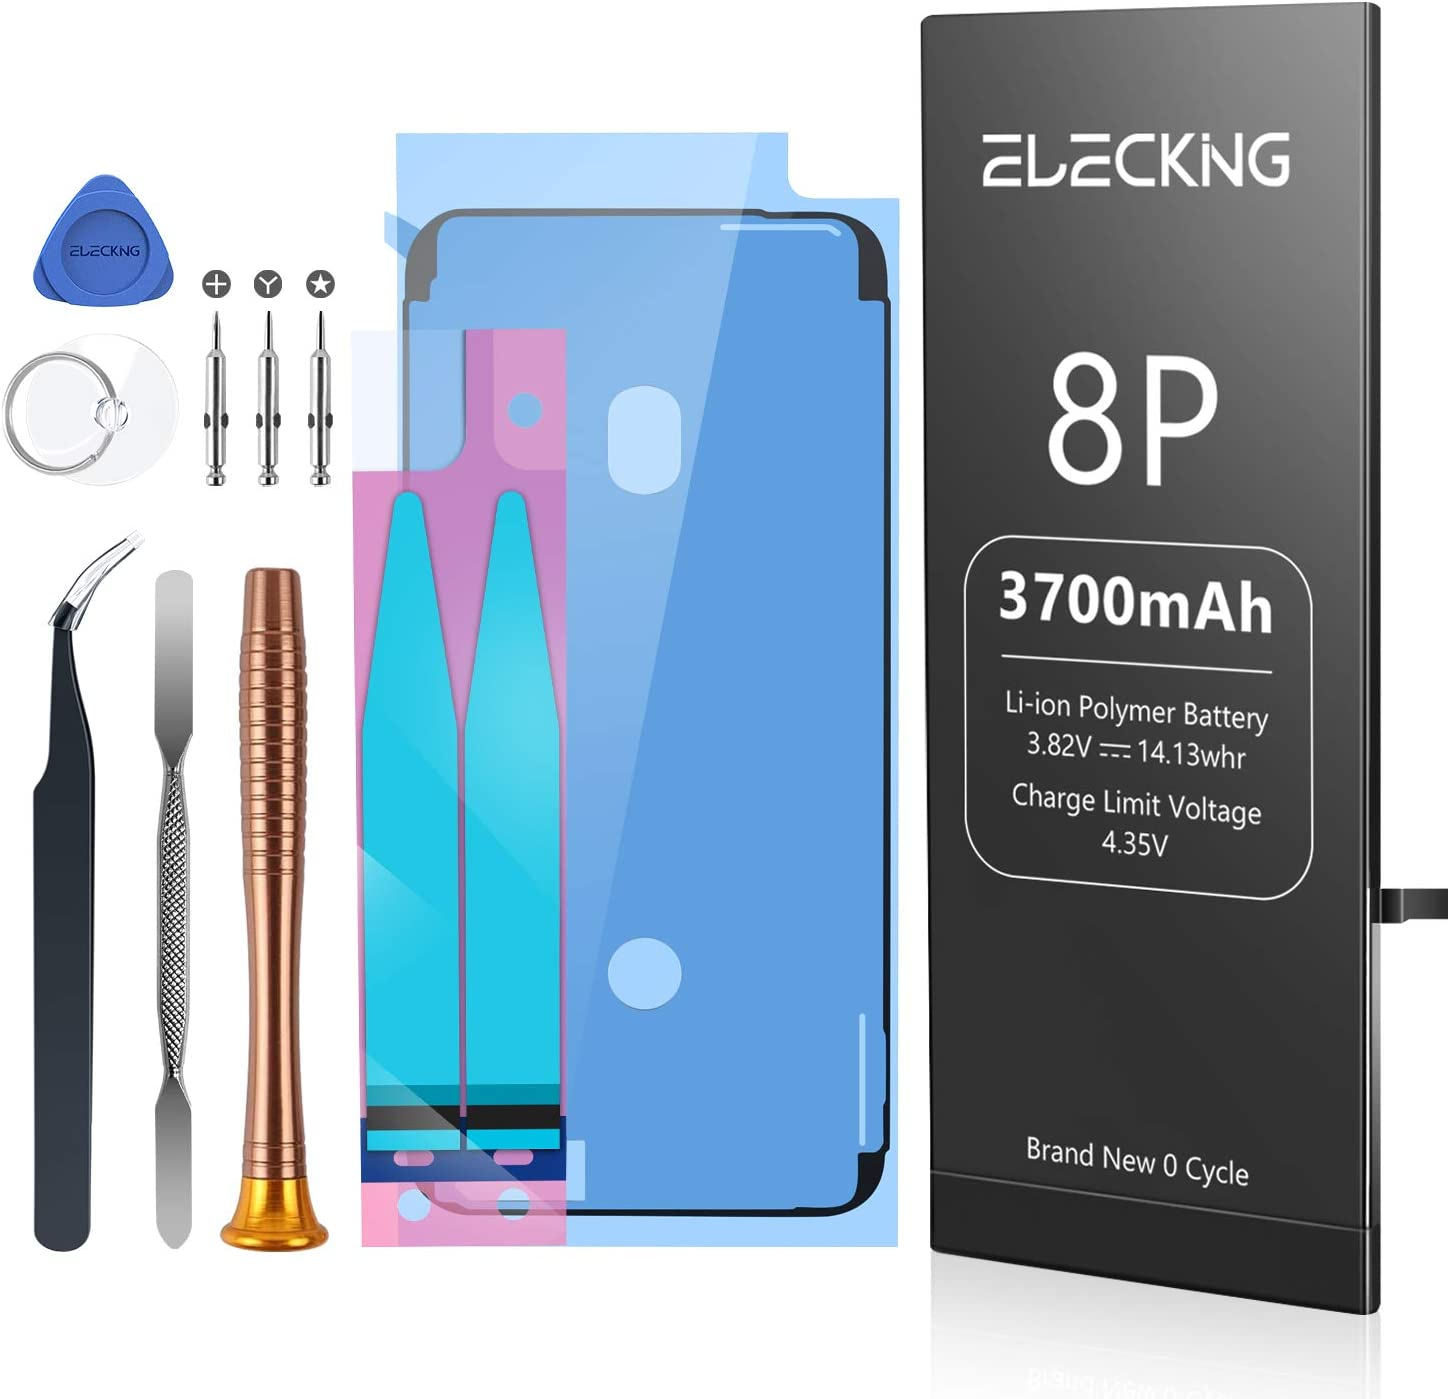 ELECKING 3700mAh Battery Replacement Compatible with iPhone 8 Plus, High Capacity Replacement Battery (for IP8P Only) with Professional Repair Tool Kits, Adhesive Strips and Instruction